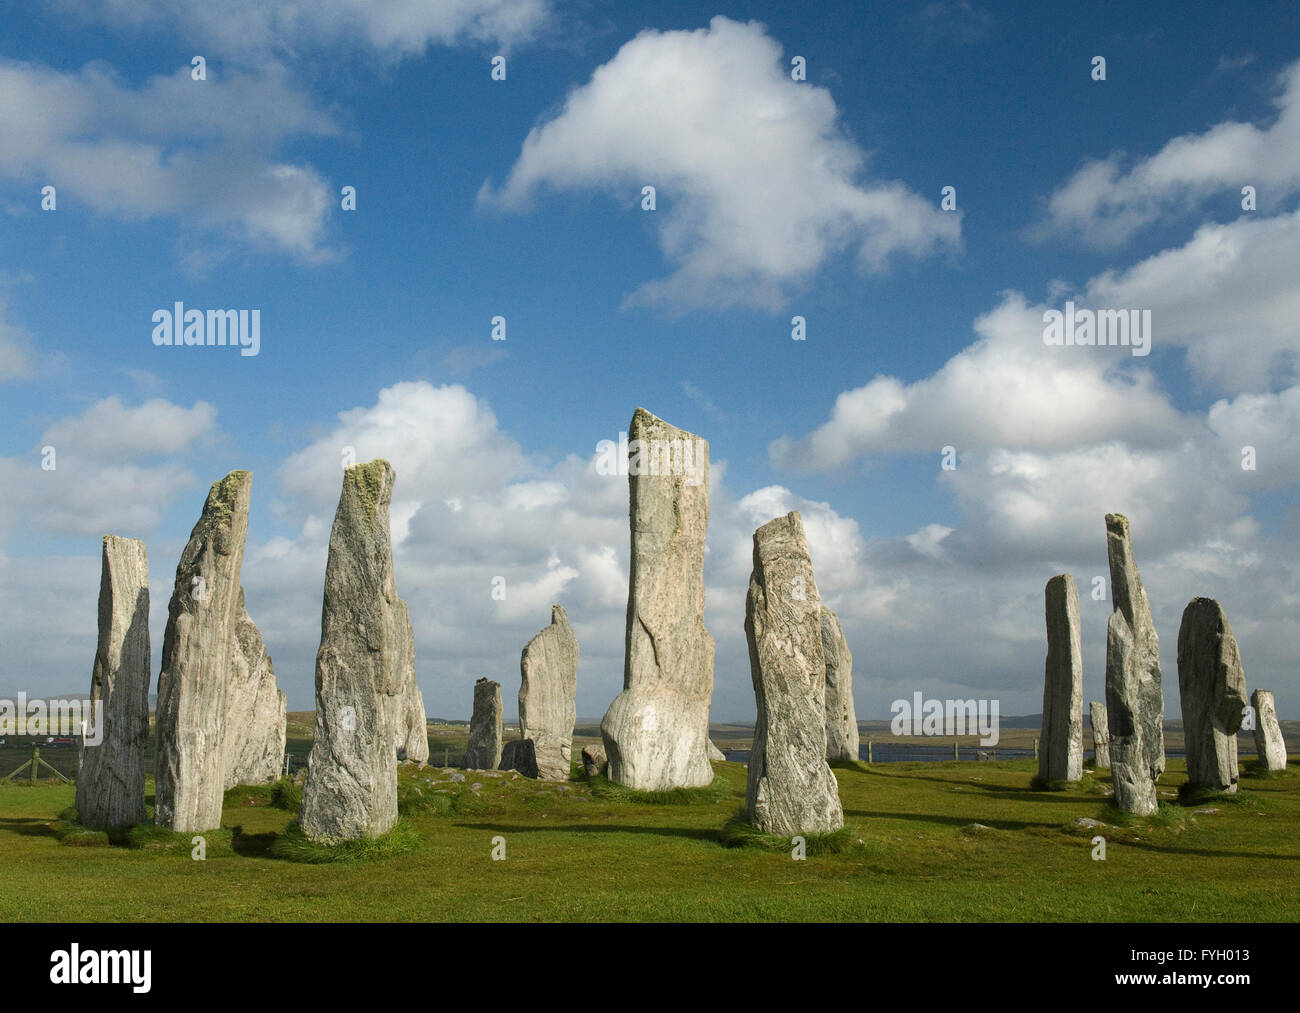 Callanish Stone Circle, Isle of Lewis, Outer Hebrides, Scotland - Stock Image